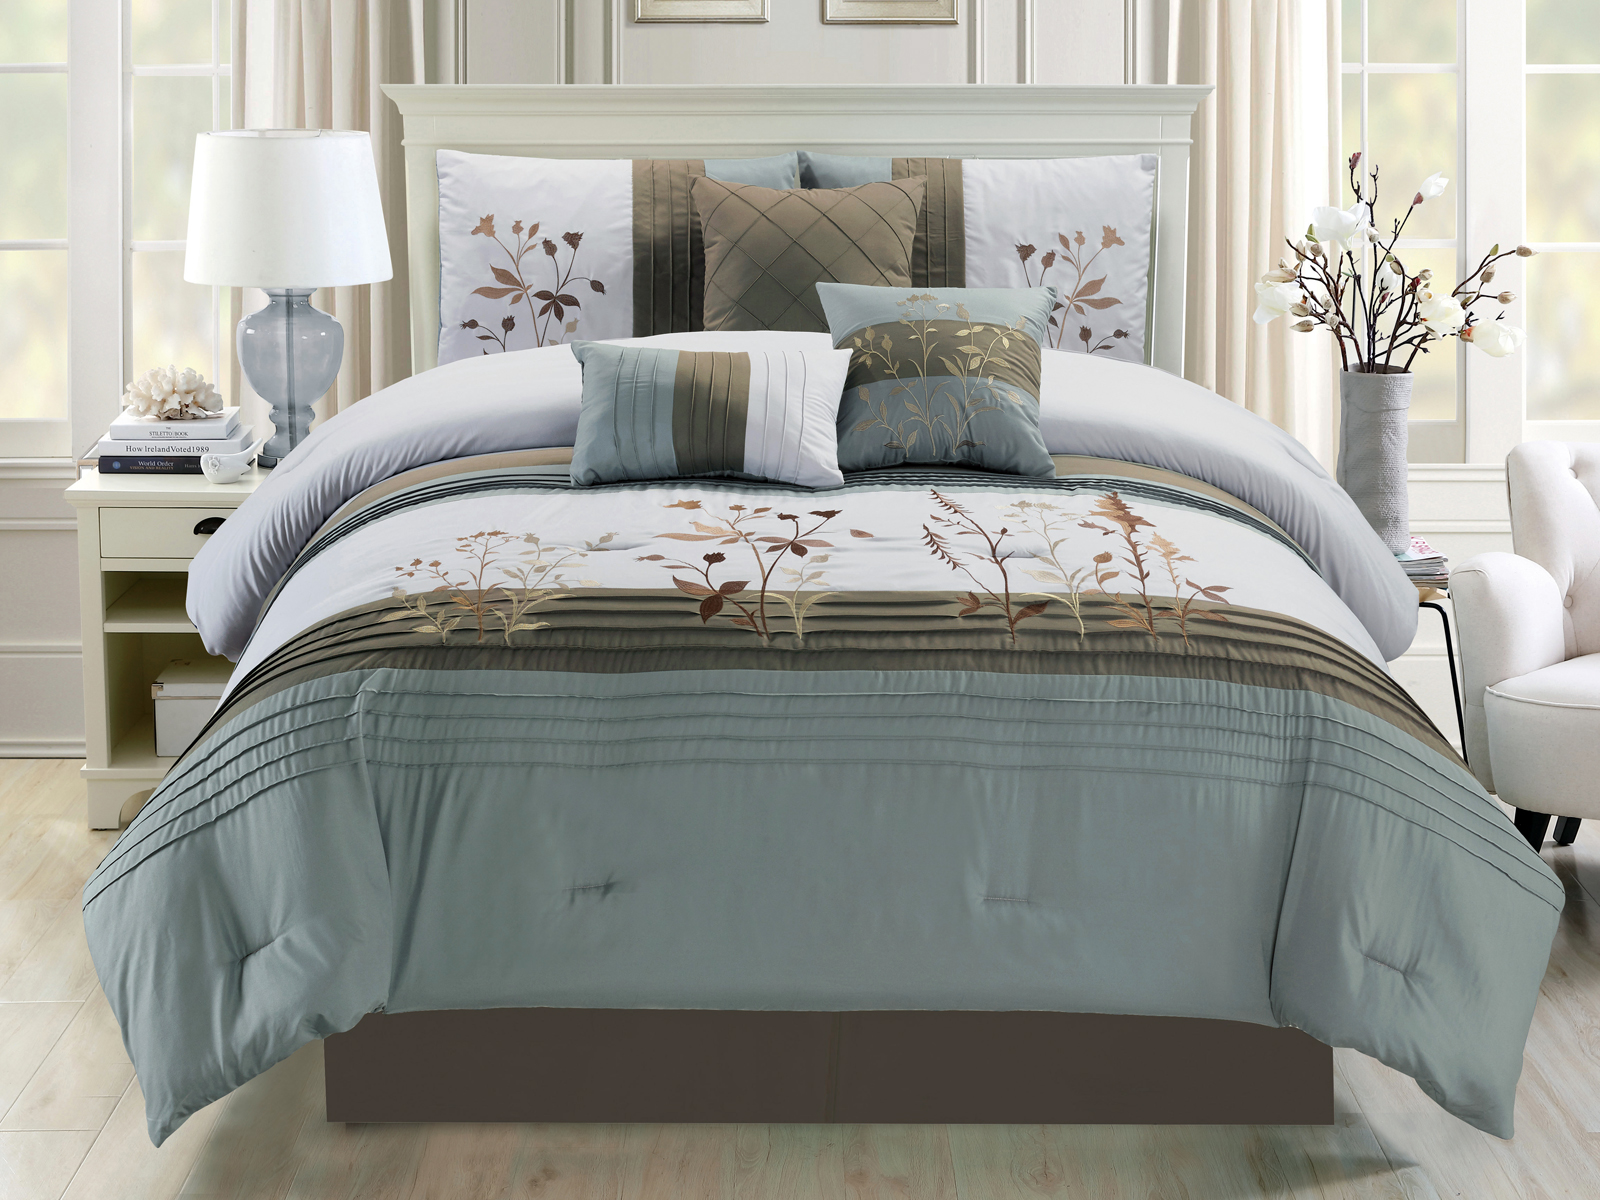 7 Pc Mischa Spring Wild Flower Embroidery Comforter Set Slate Blue Gray Queen Ebay